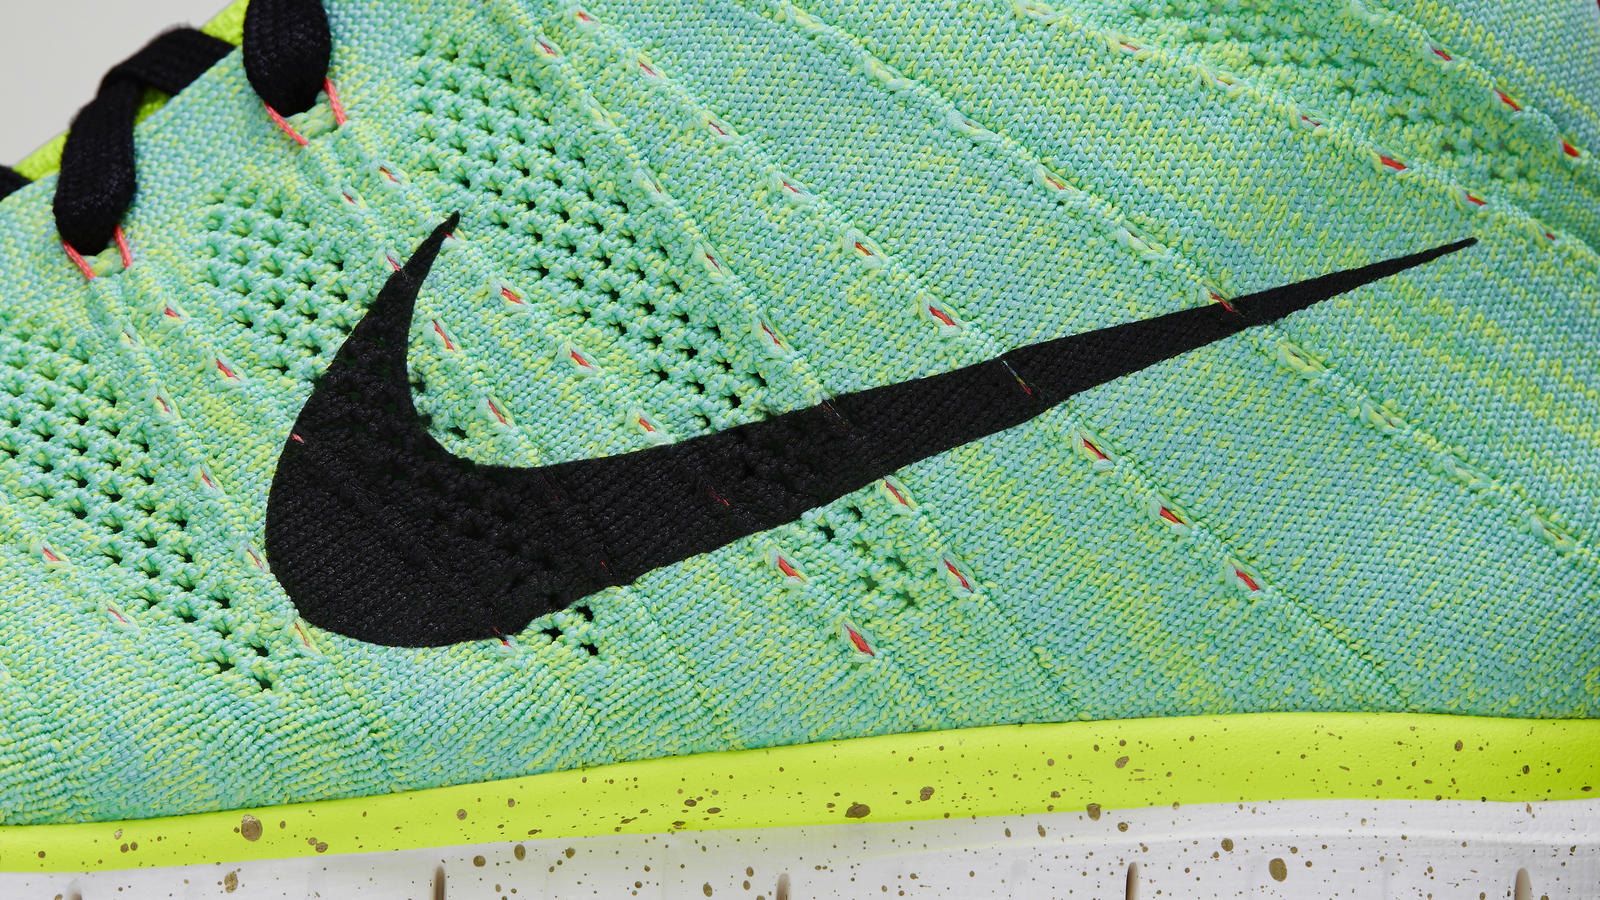 magista_freeflyknit(detail)